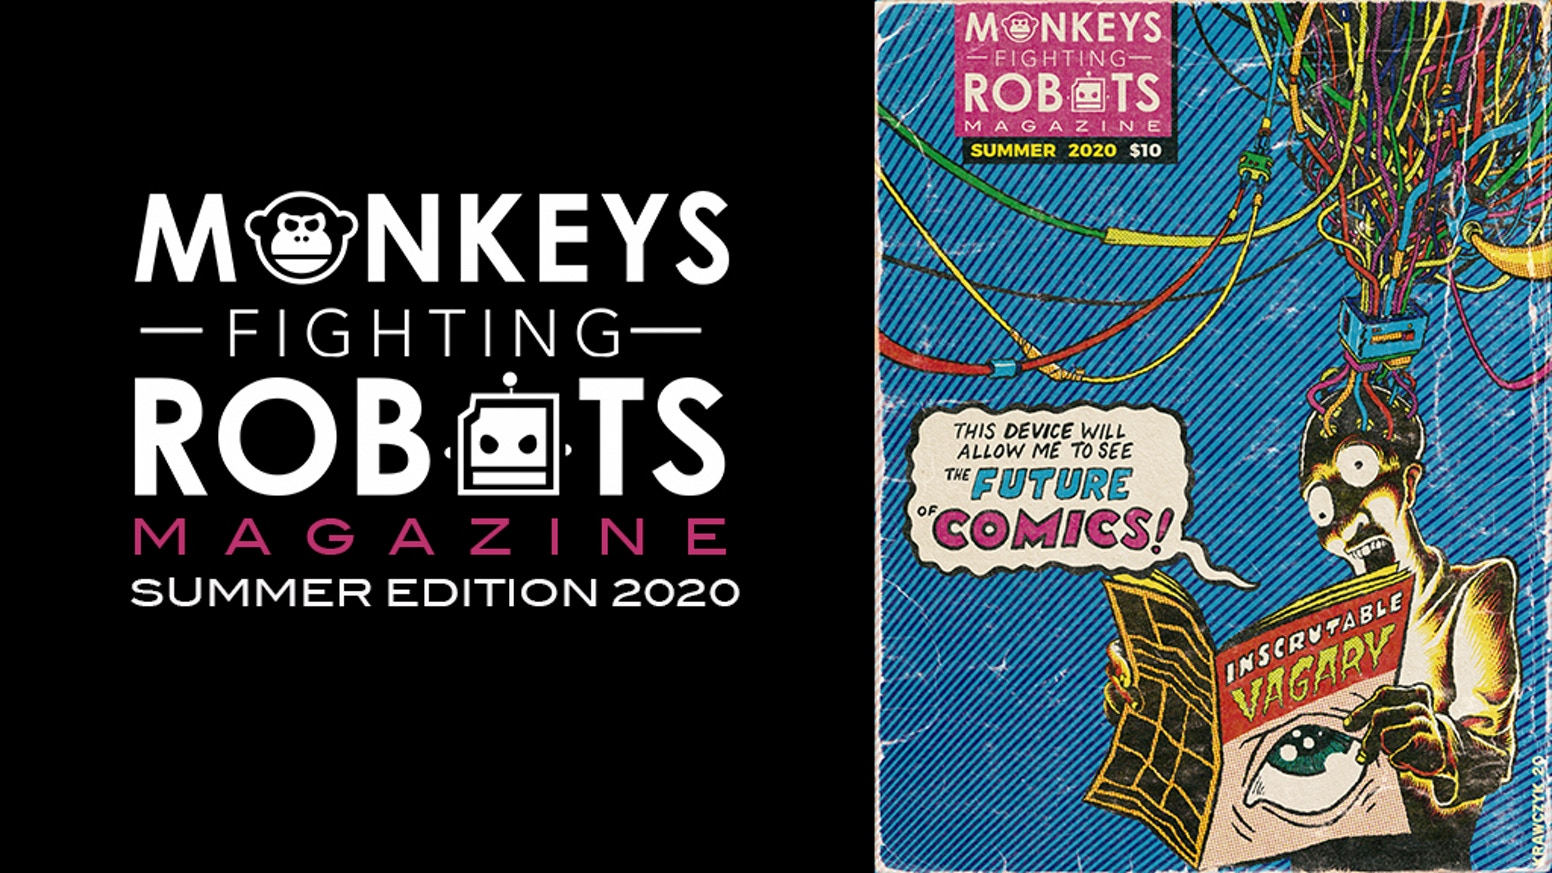 Monkeys Fighting Robots: THE MAGAZINE #1 is coming for you, and no one will be prepared for the comic book euphoria unleashed on the world! We have gathered our favorite artists and some great writers for articles about comics, and curated comic strips.